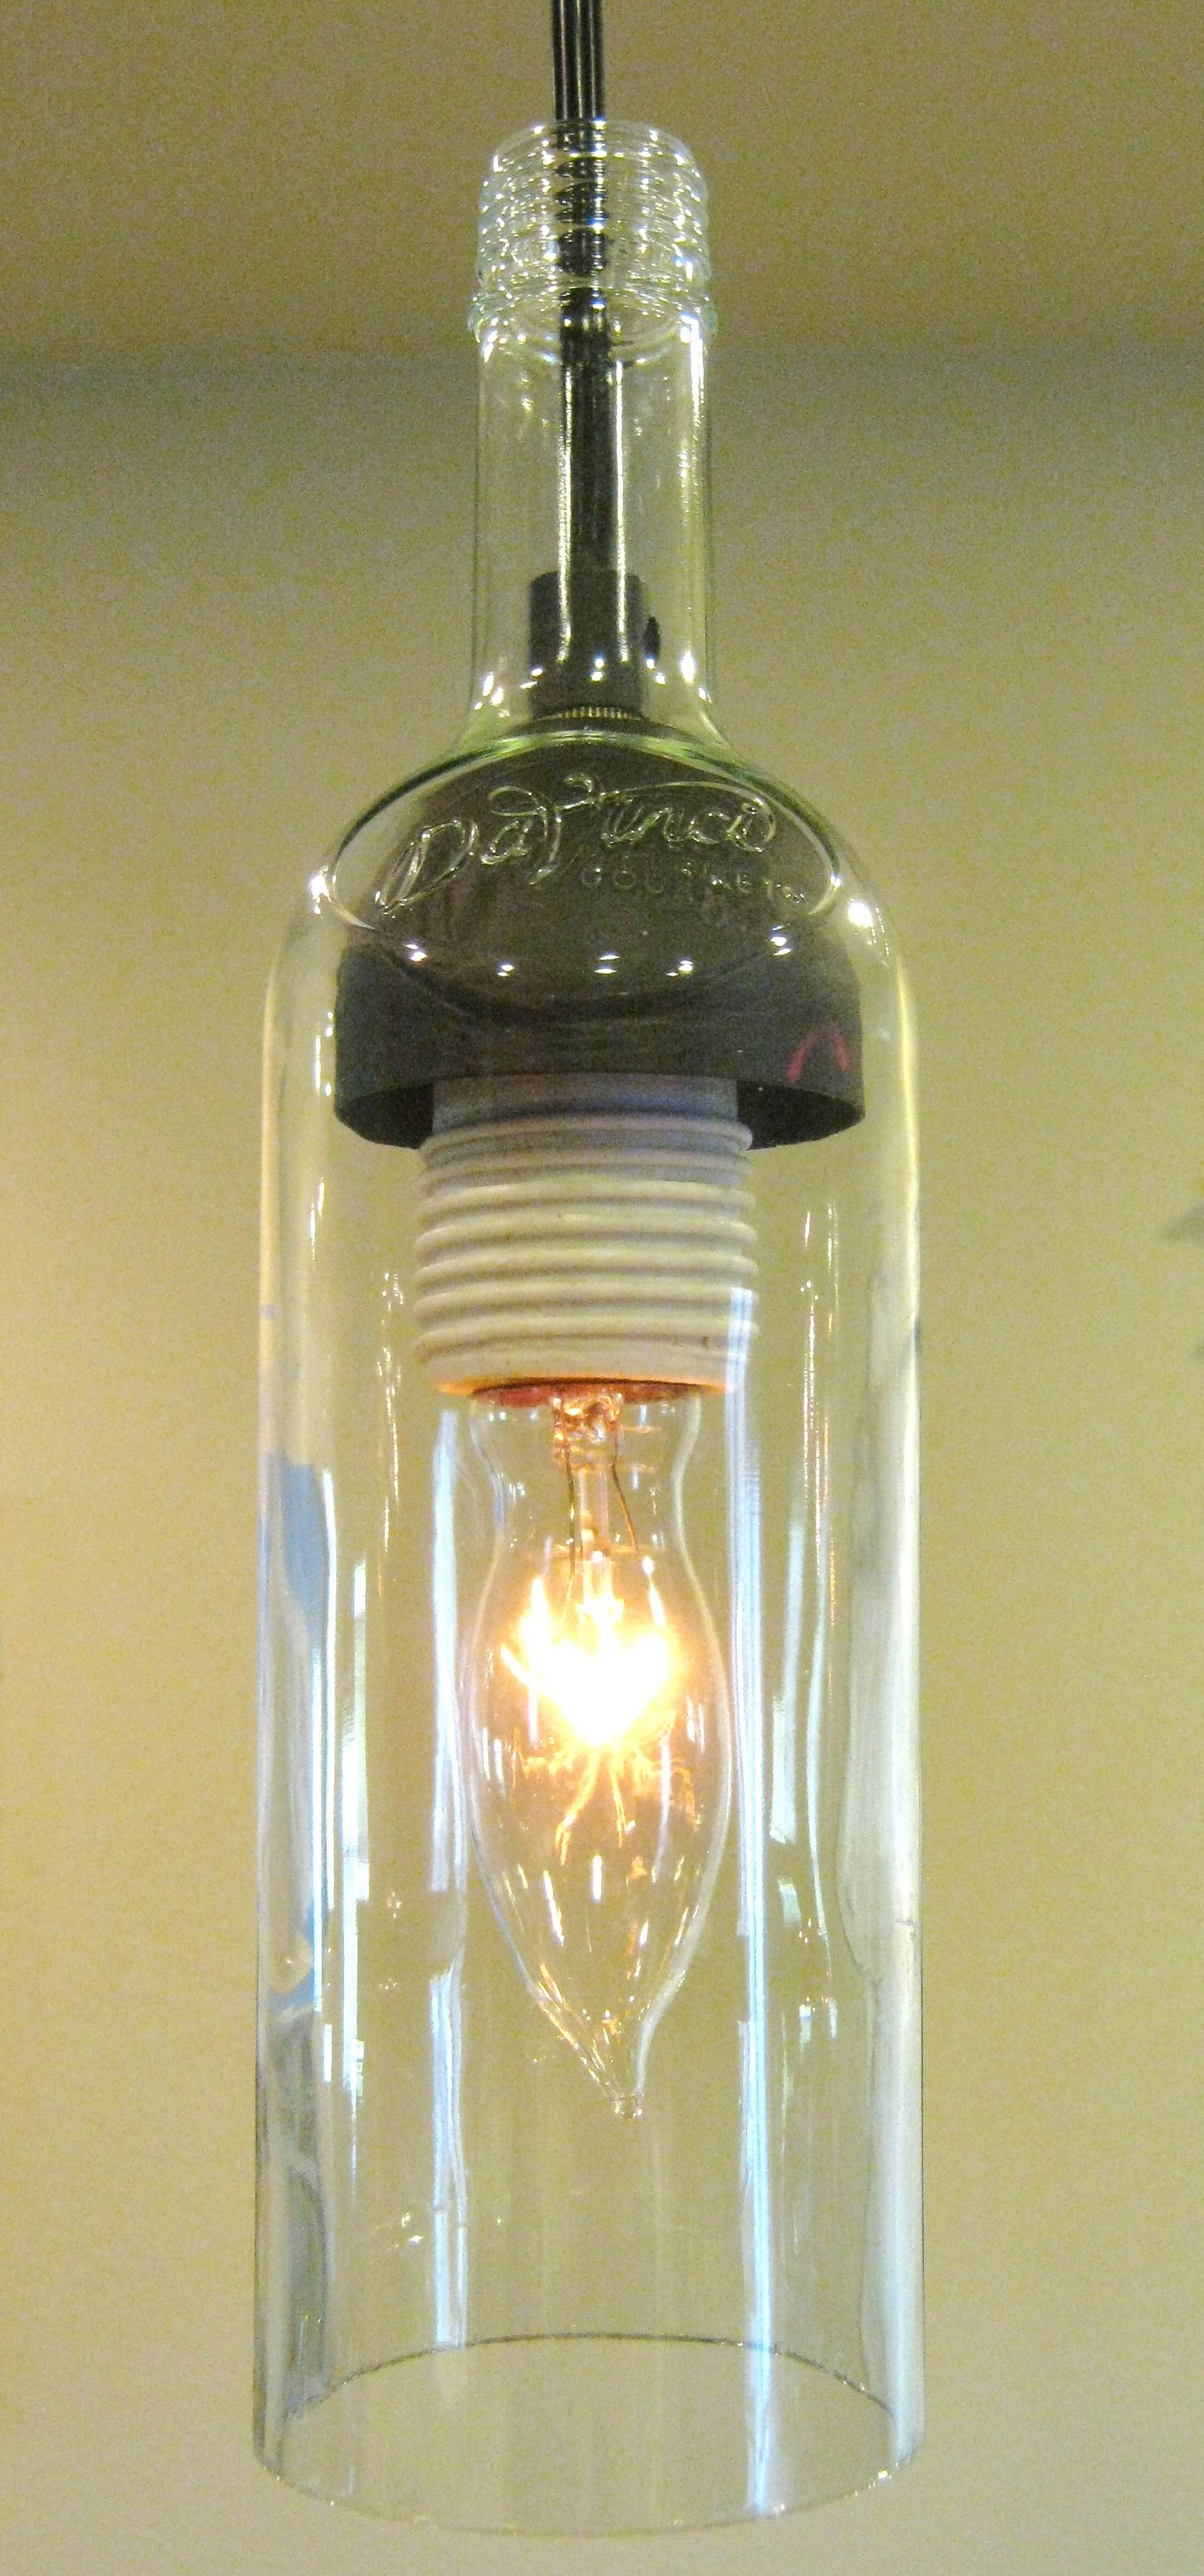 Epic Wine Bottle Pendant Light 16 About Remodel Plug In Pendant Inside Bottle  Pendant Lights (